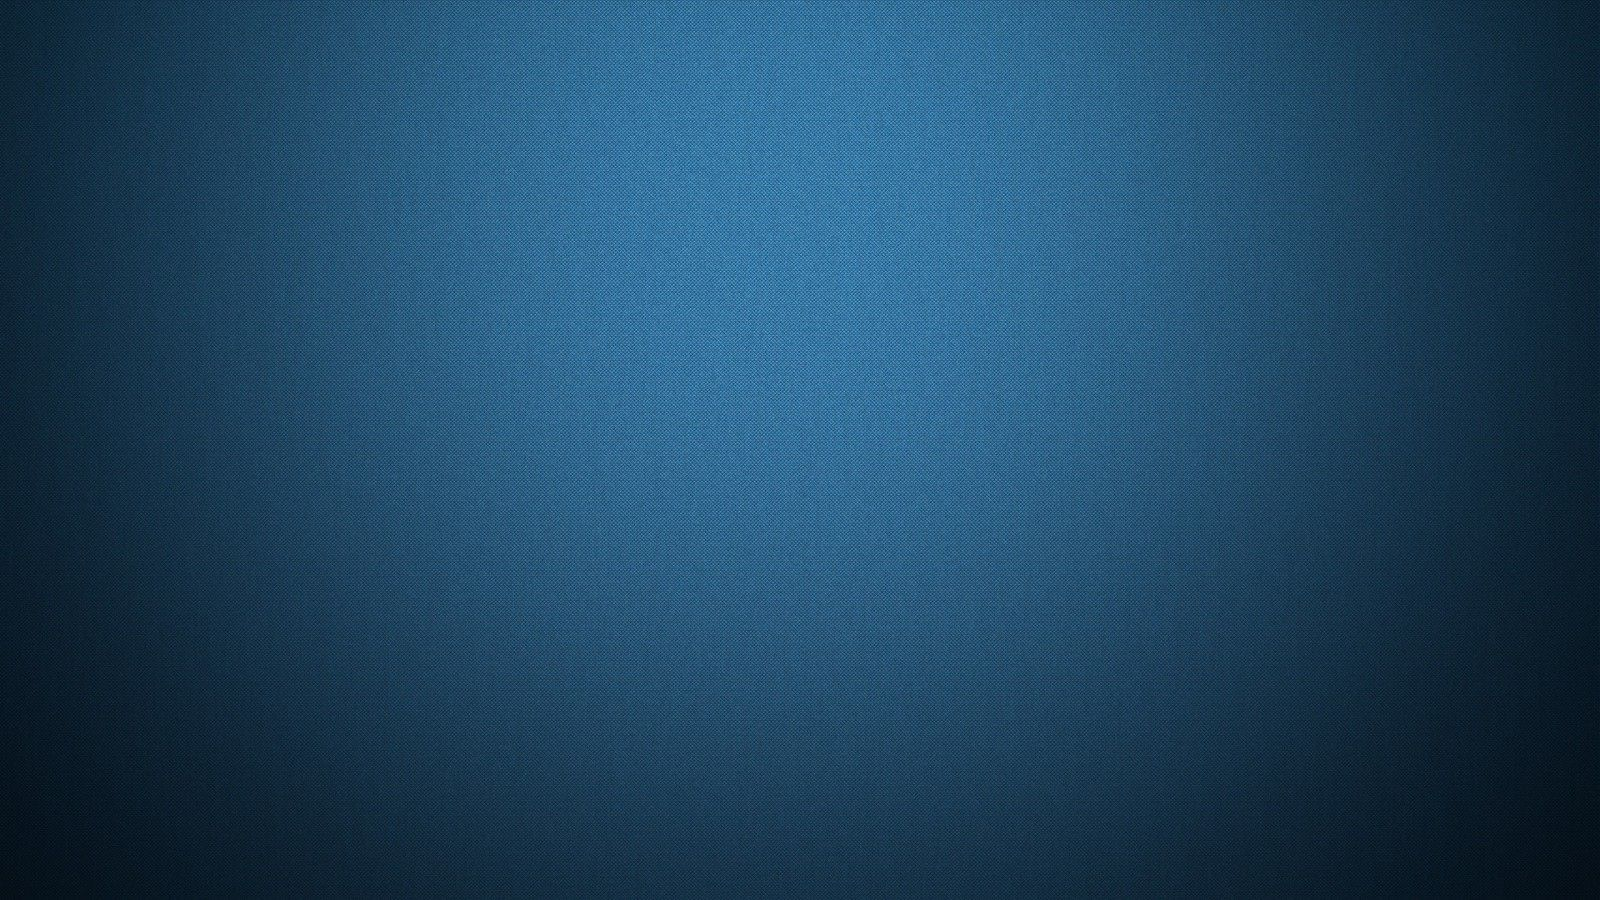 Solid Blue Color Wallpaper 12666